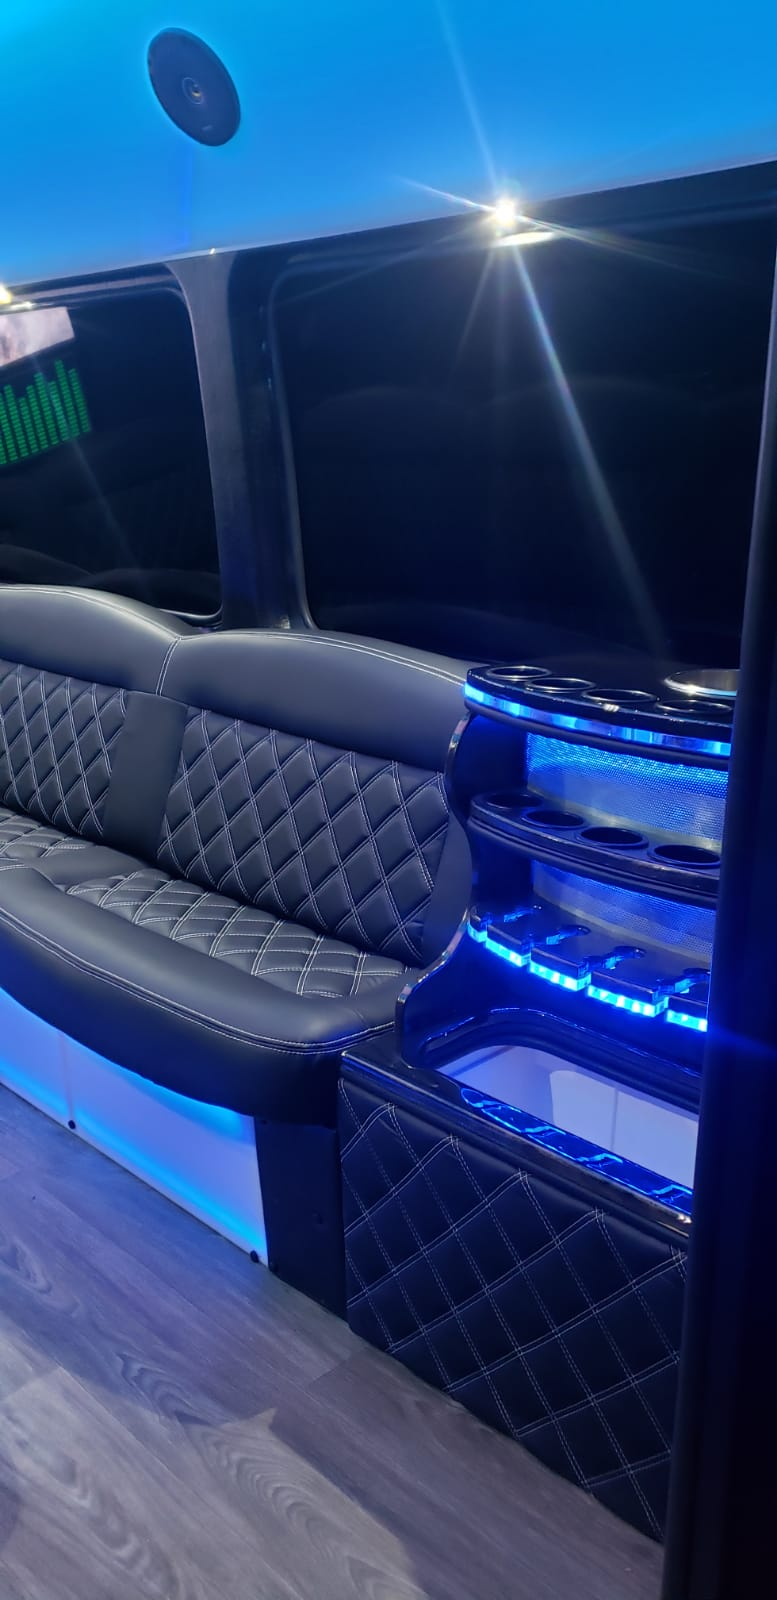 10-14 PASSENGERS PARTY BUS - Inside Couch